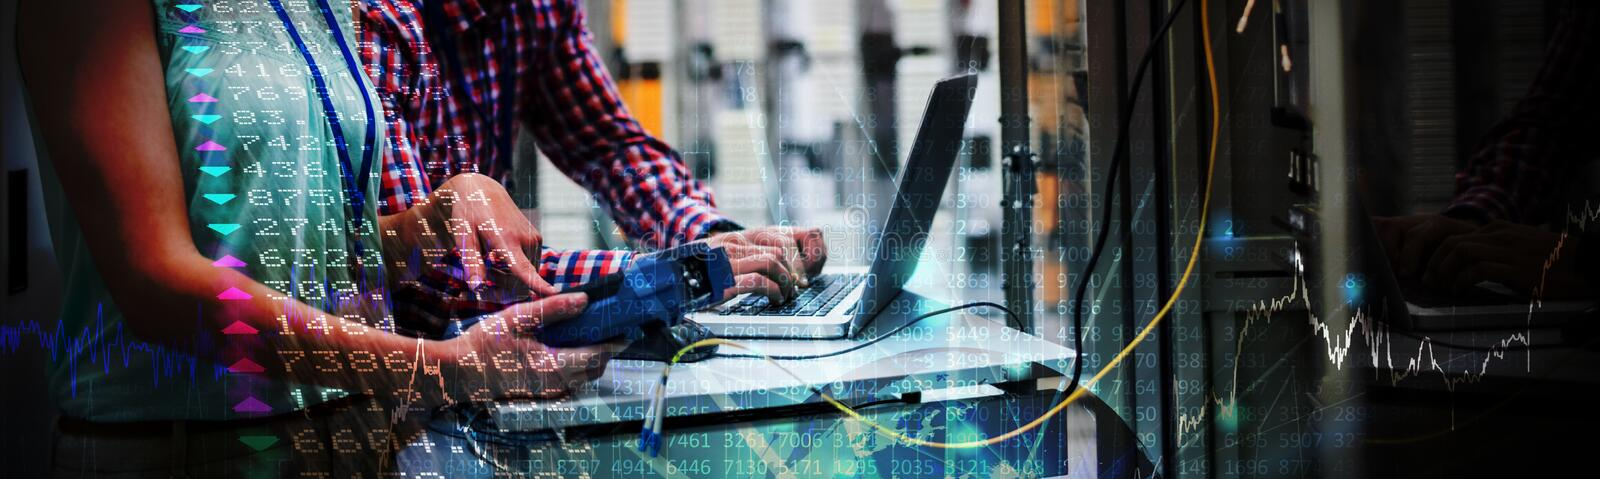 Composite image of stocks and shares. Stocks and shares against technicians using laptop while analyzing server royalty free stock photo